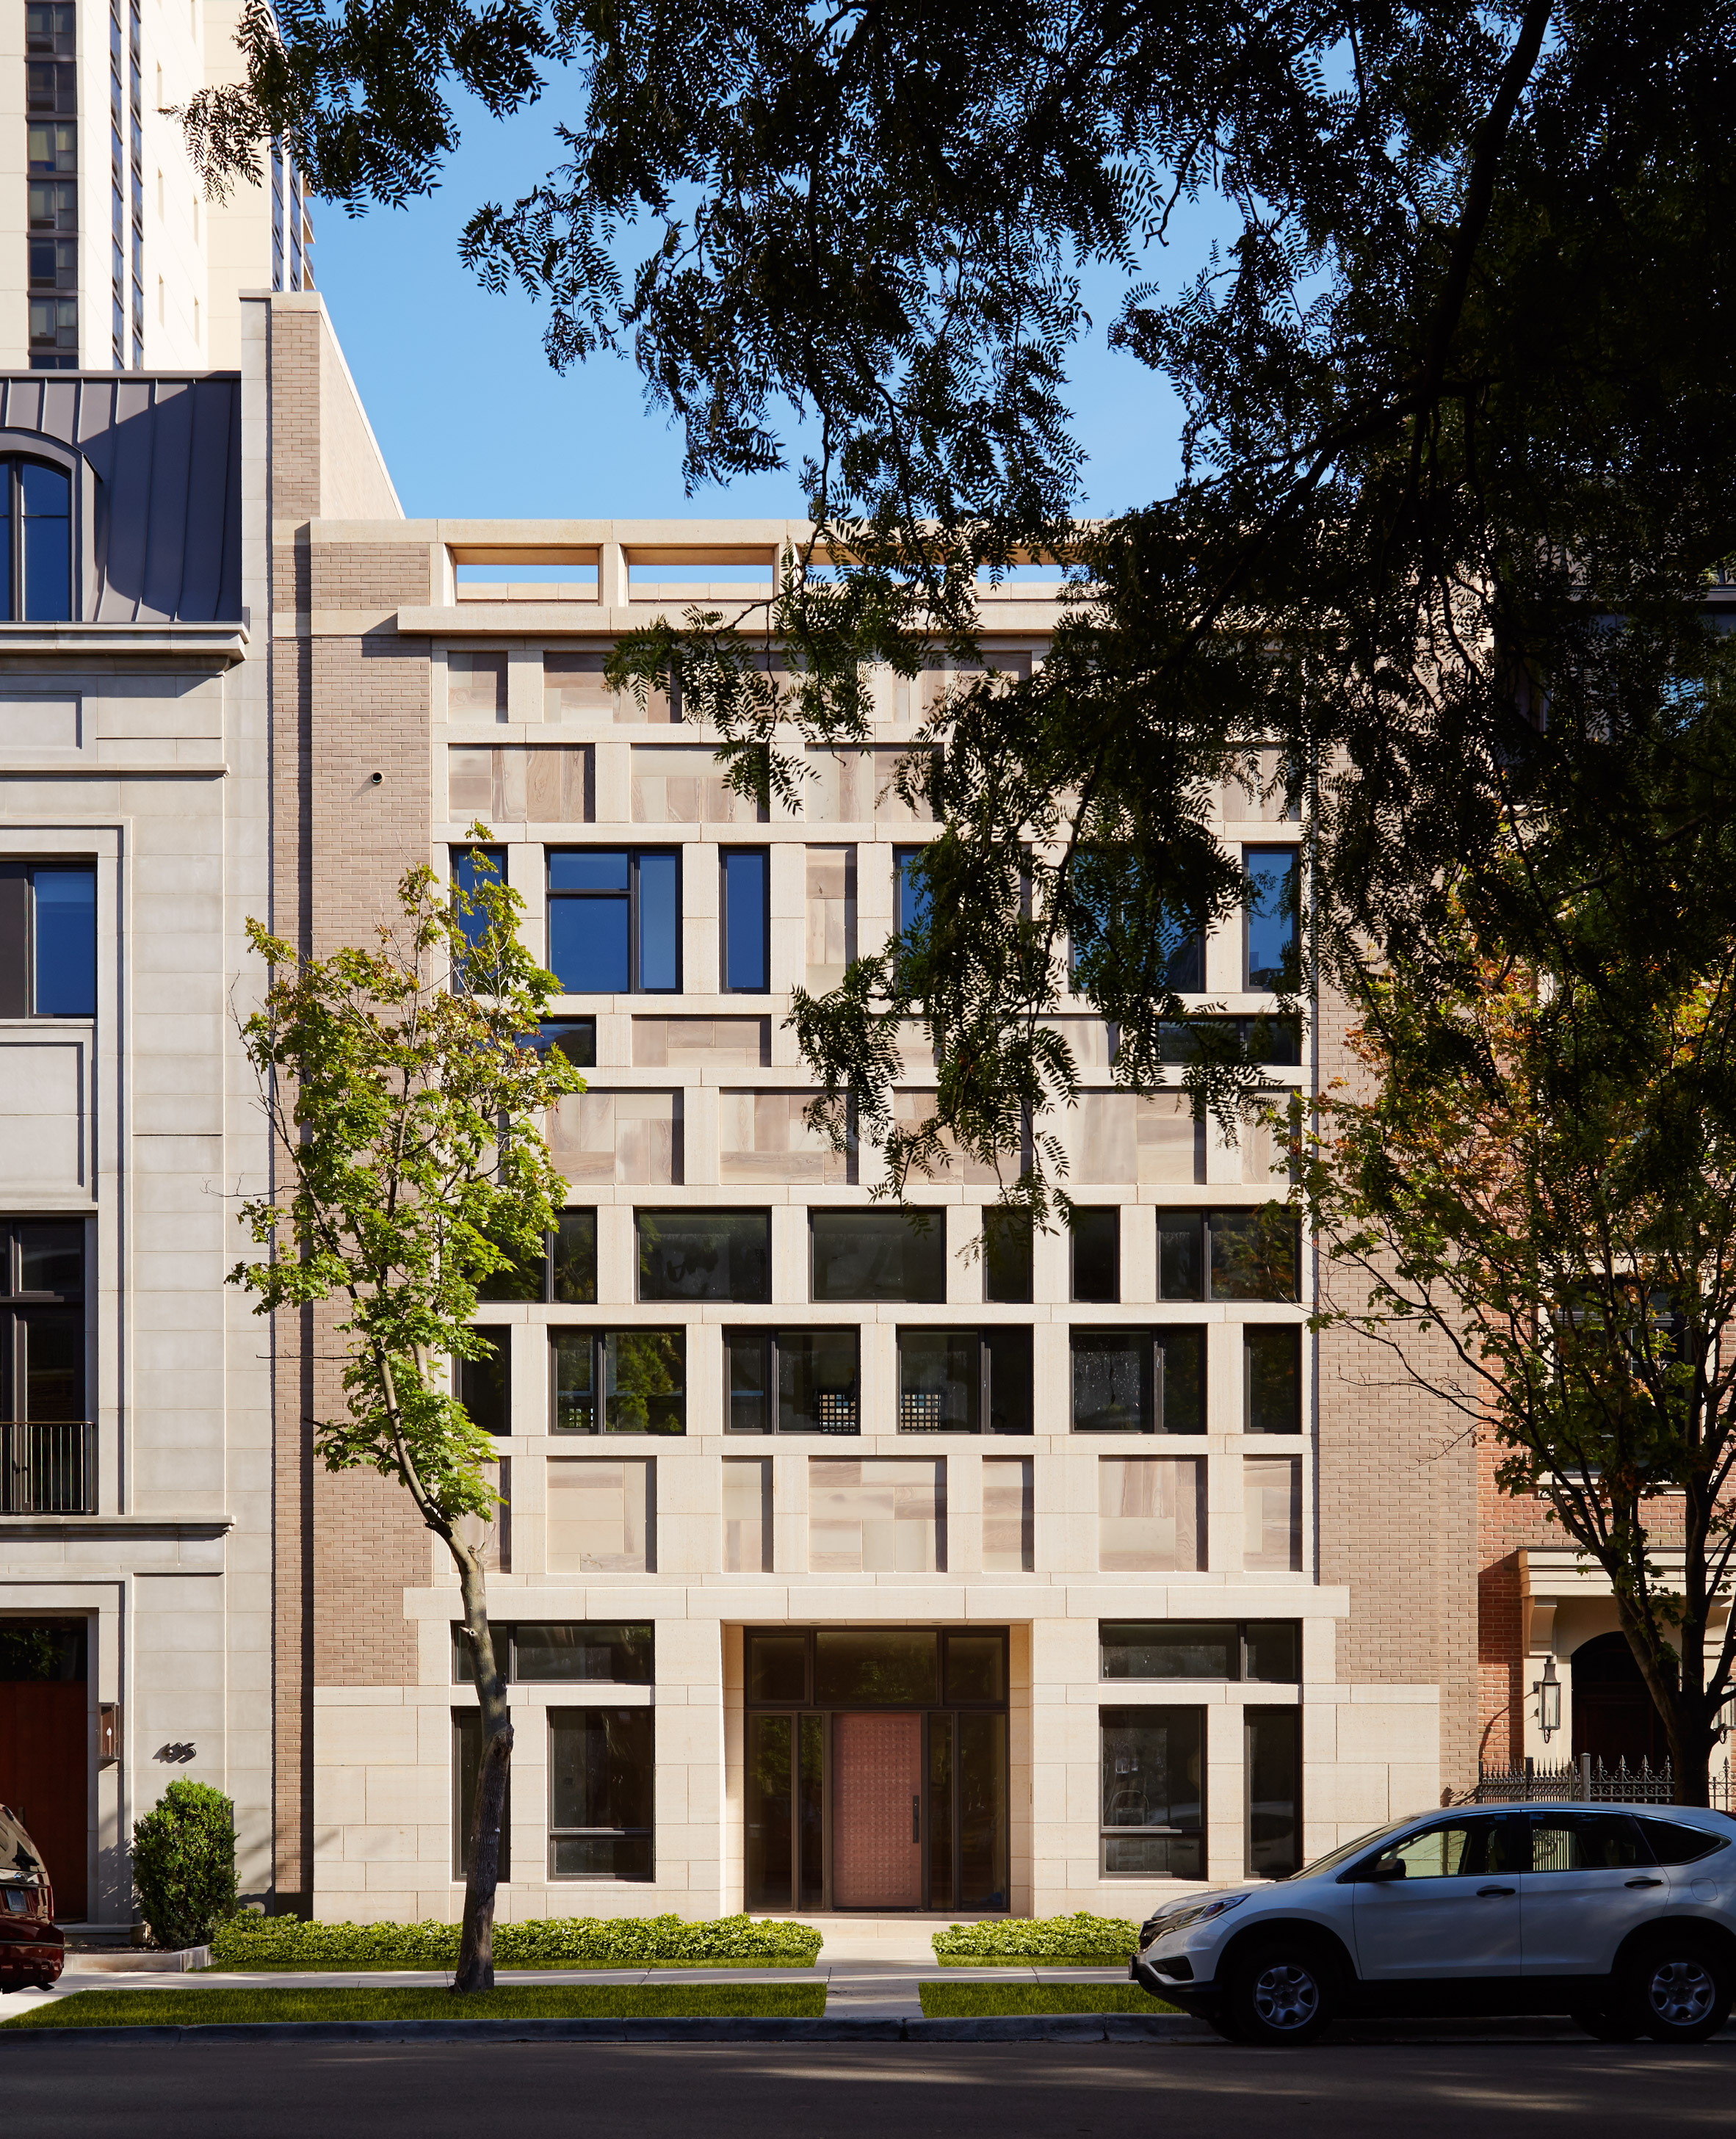 Patchwork of stone, brick and glass fronts Chicago townhouse by HBRA Architects